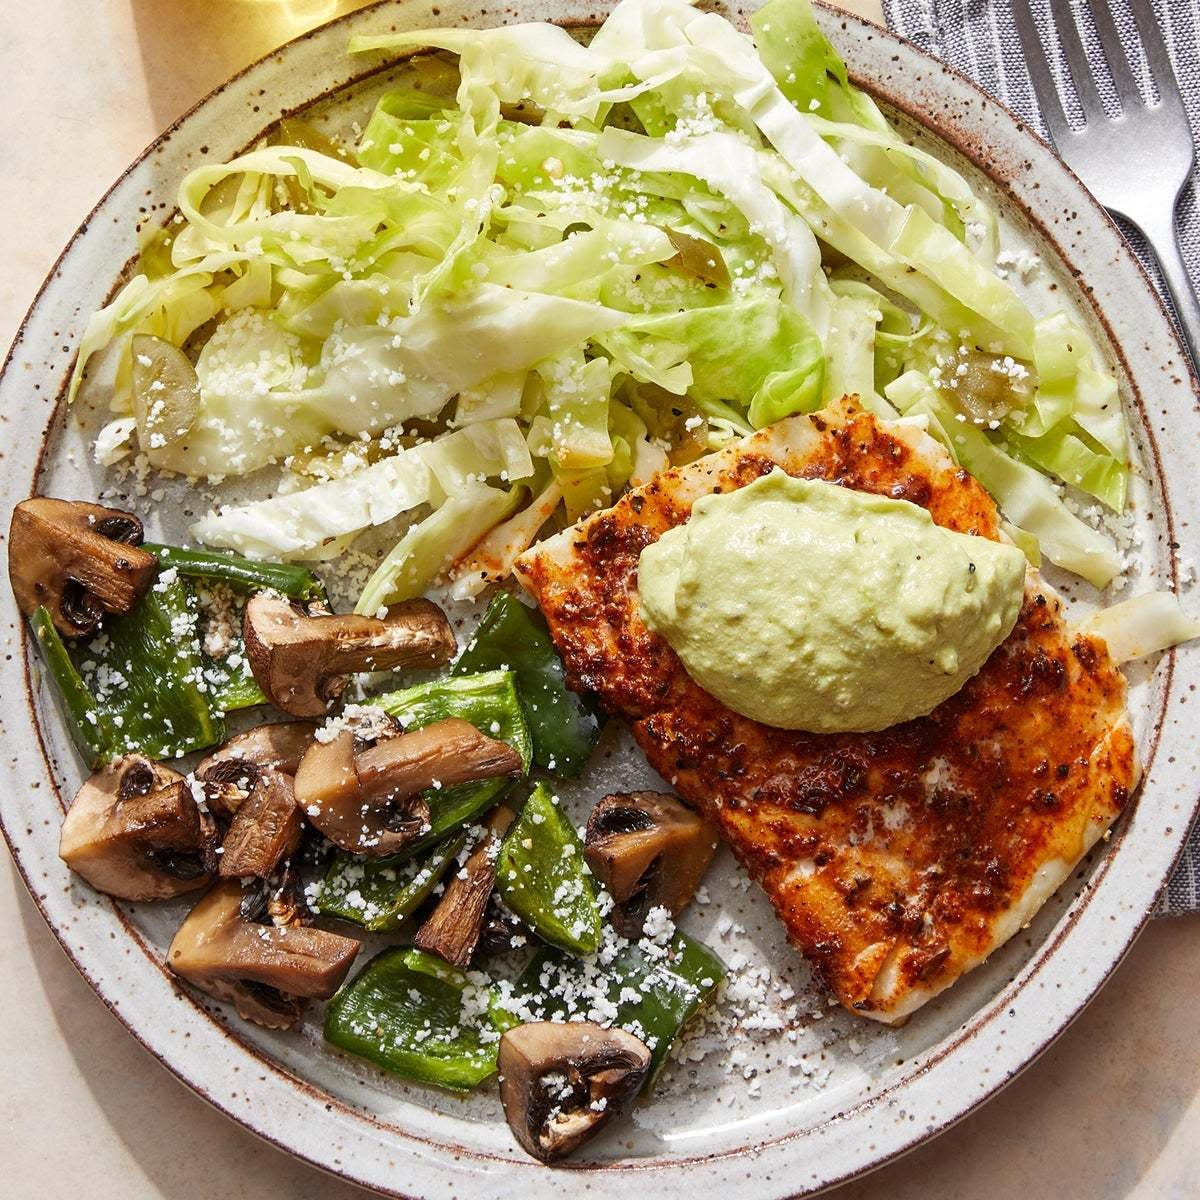 Chile-Lime Cod & Creamy Guacamole with Roasted Vegetables & Spicy Cabbage Slaw